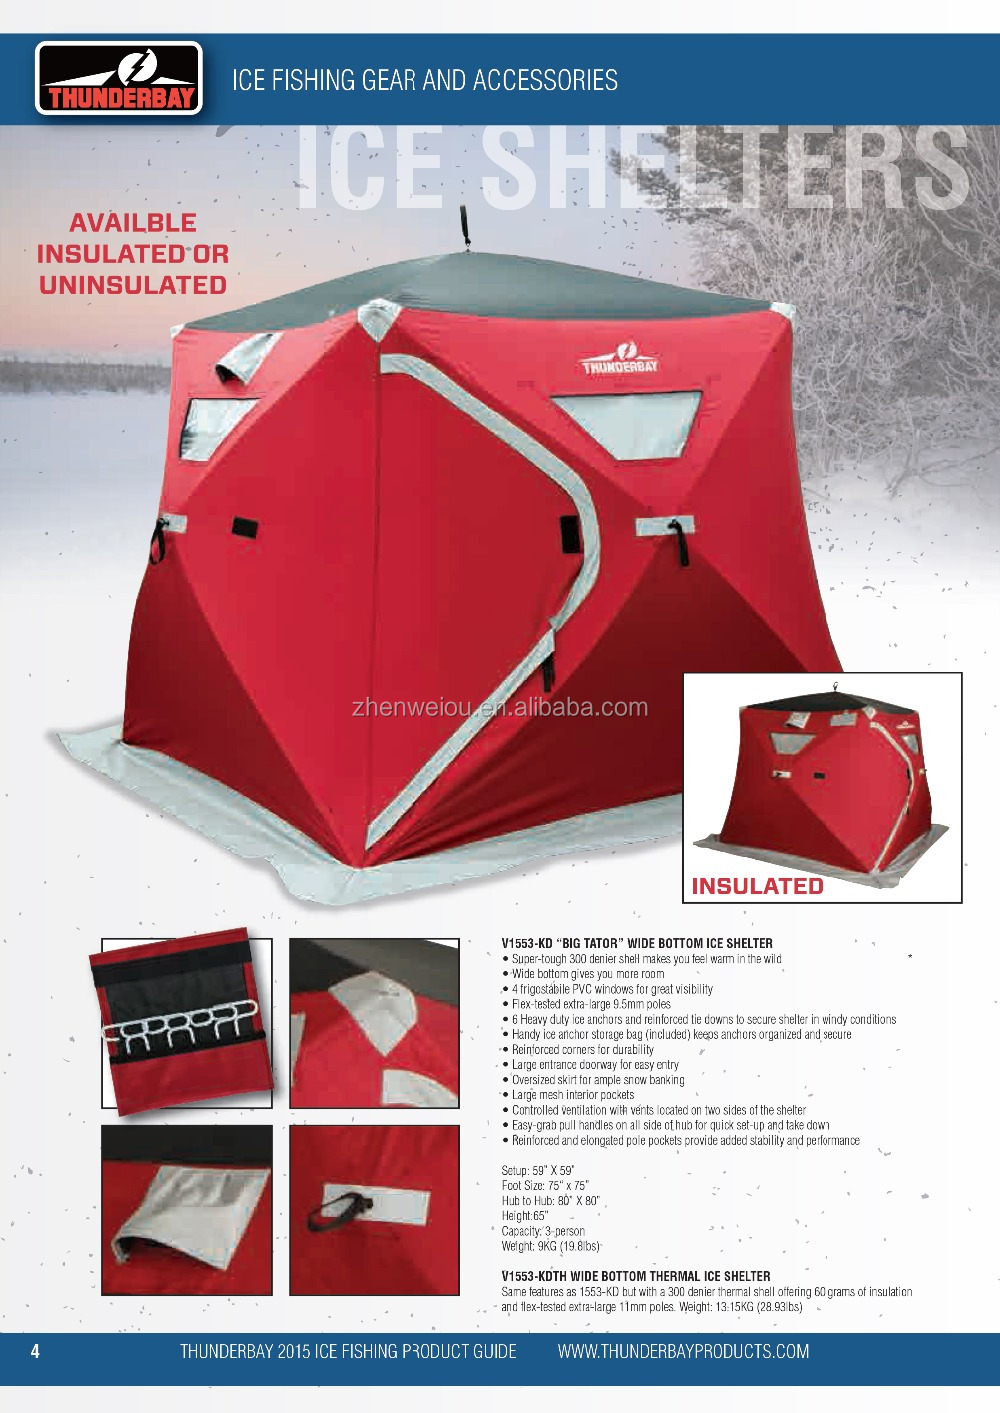 Winter Pop Up Shelter Interior : Pop up ice fishing shelter for winter and hunting